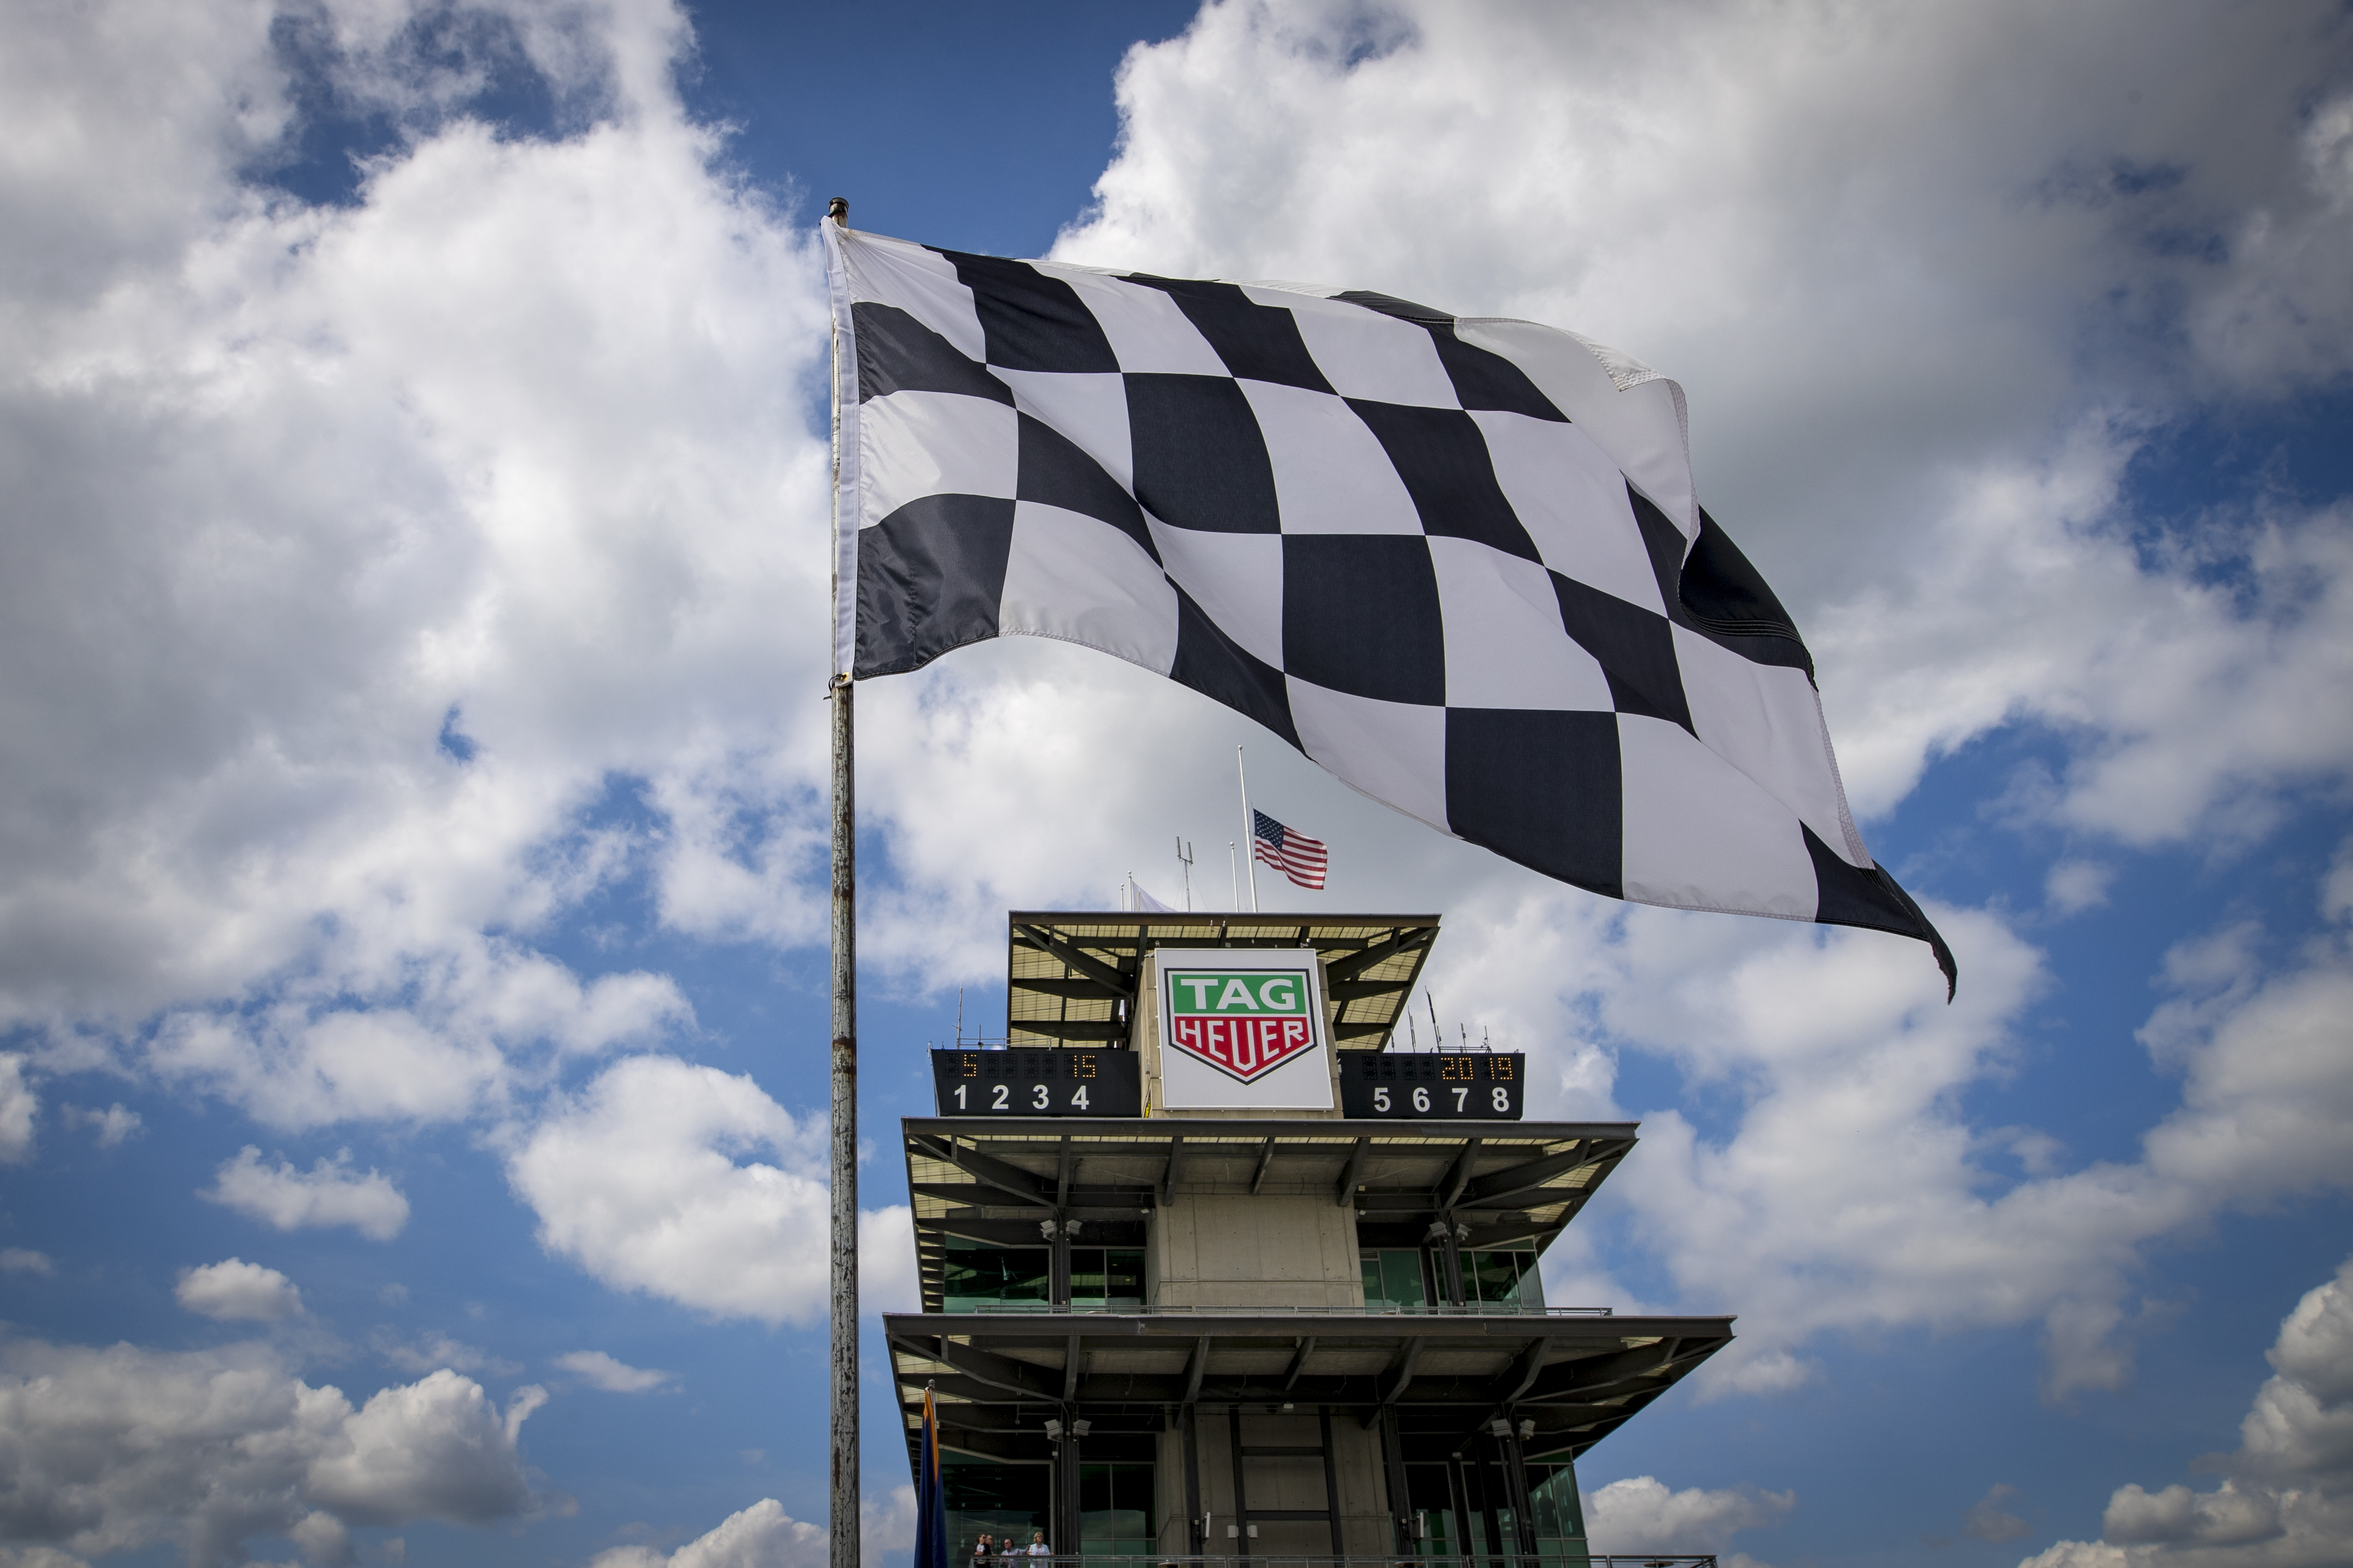 Self-driving cars will hit the Indianapolis Motor Speedway in a landmark A.I. race thumbnail